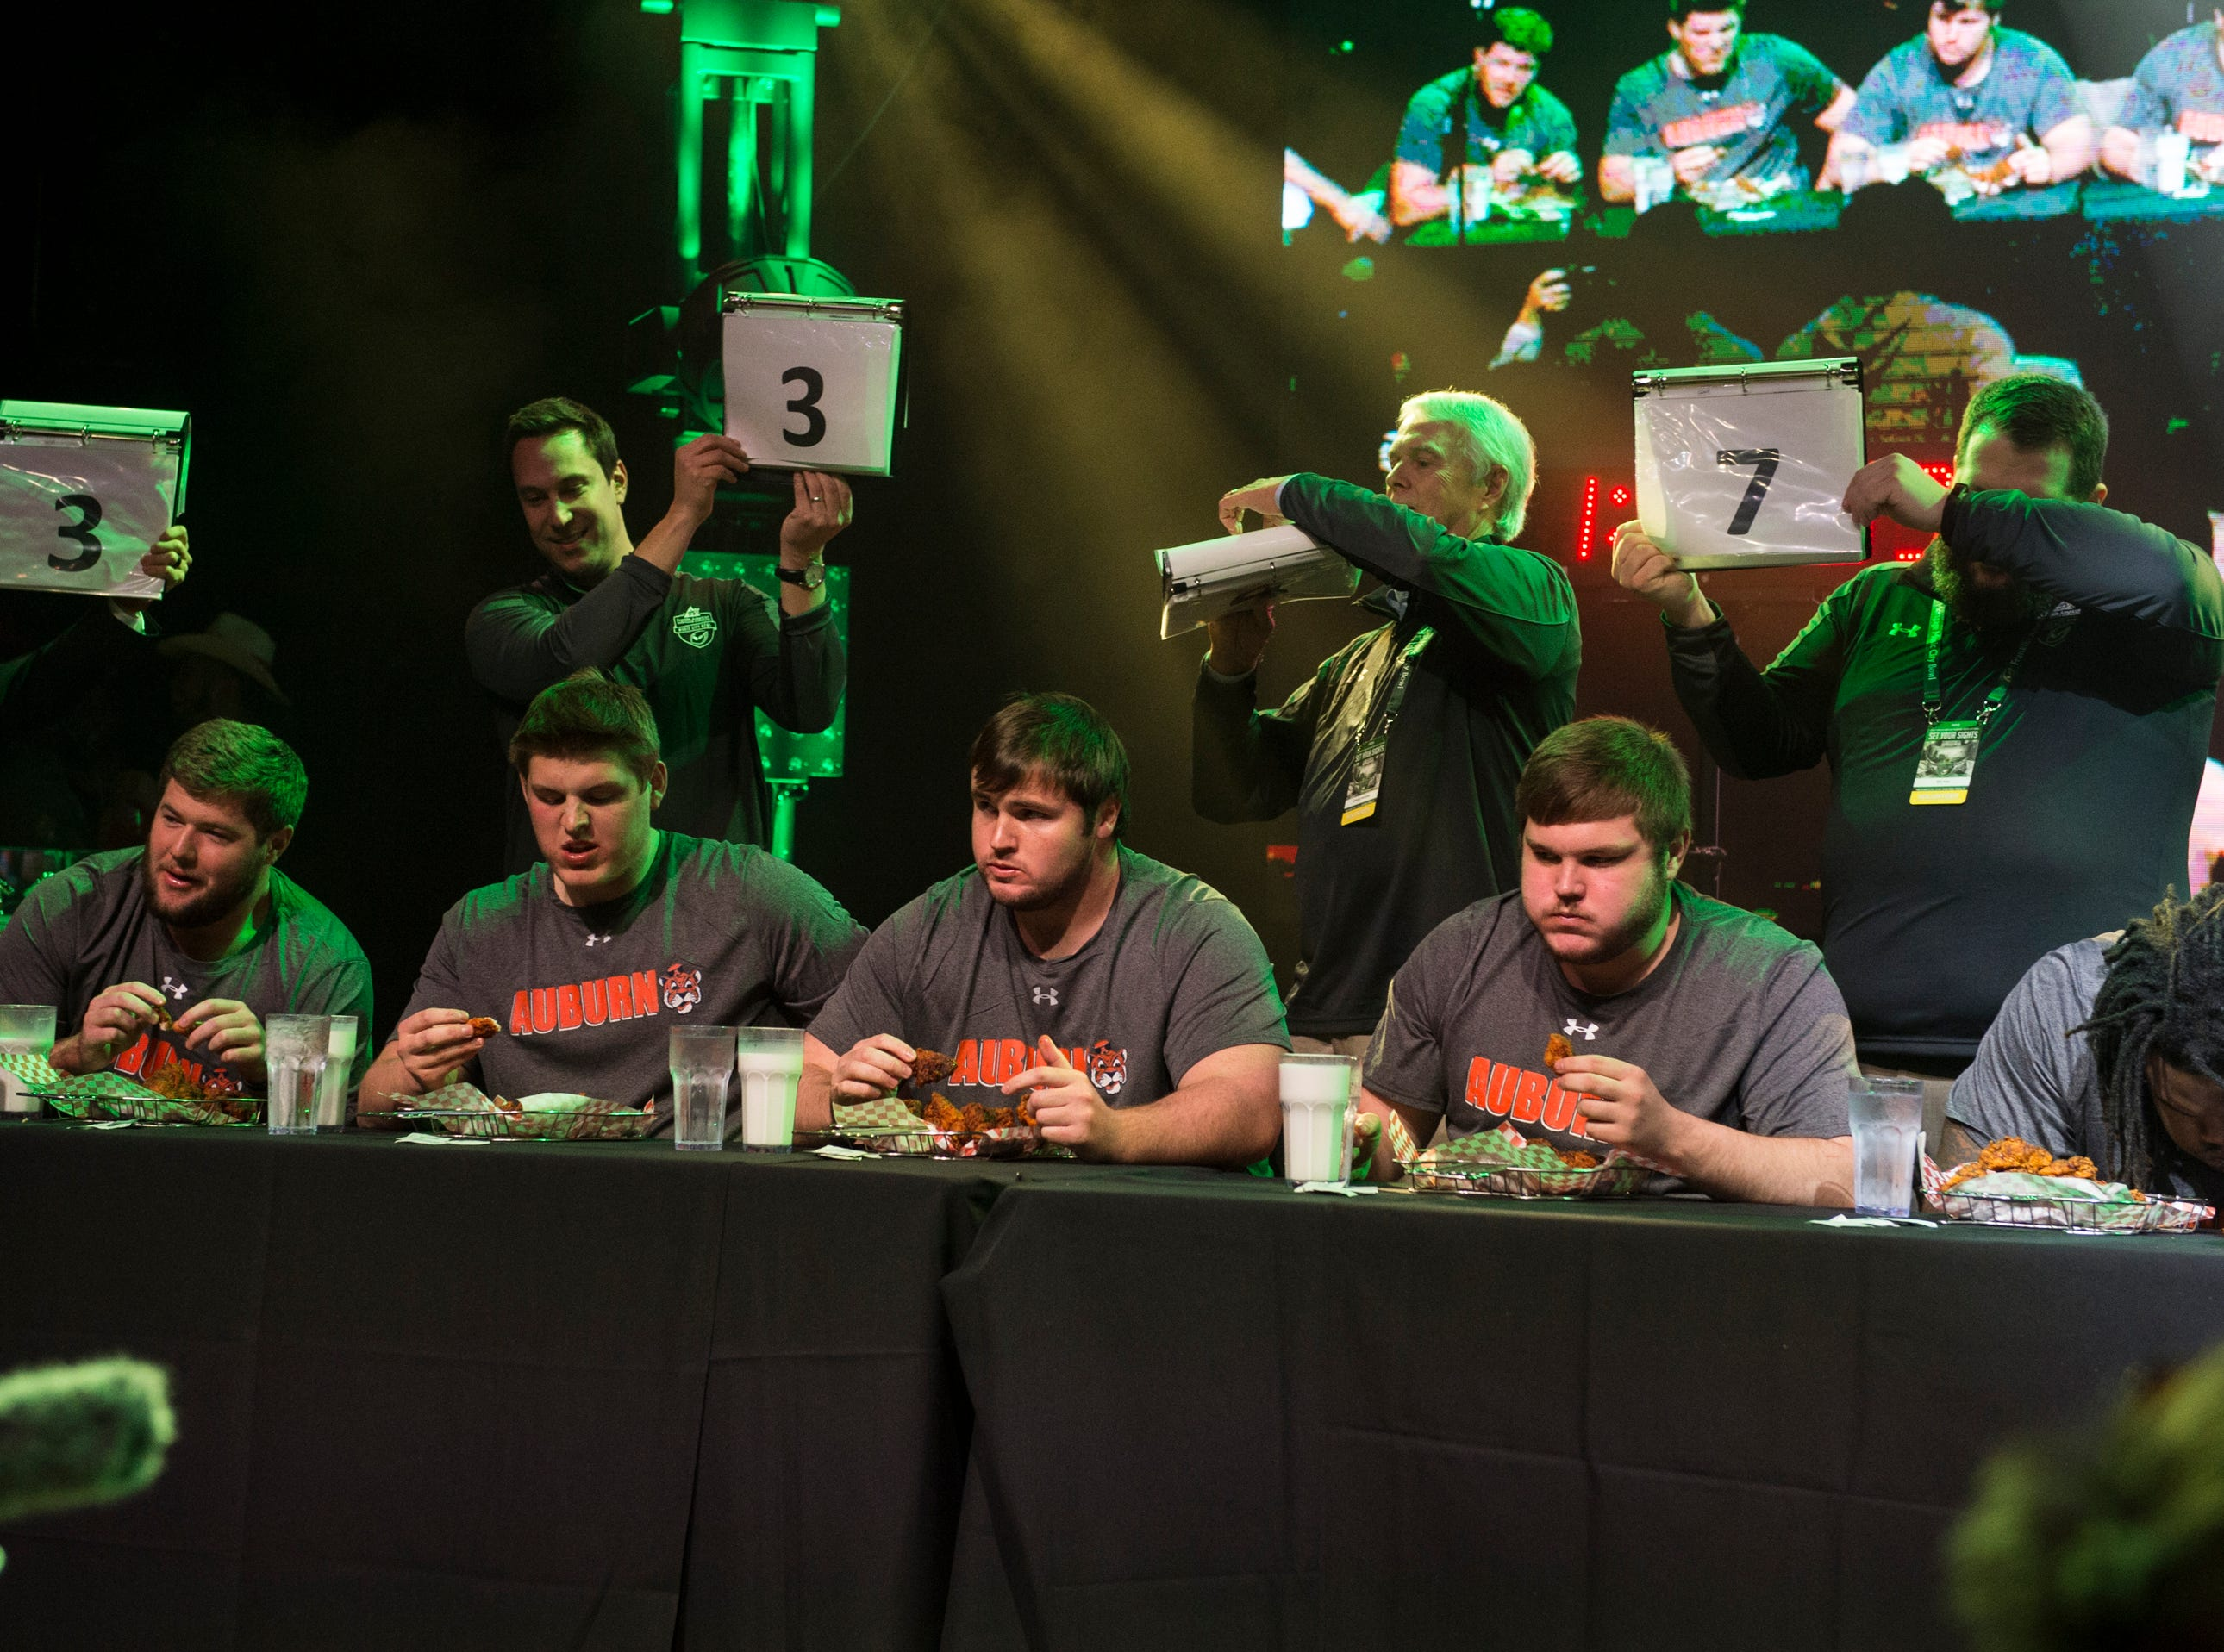 Auburn players compete in a hot chicken eating competition at Wild Horse Saloon in Nashville, Ten., on Wednesday, Dec. 26, 2018. Auburn takes on Purdue in the Music City Bowl Friday.